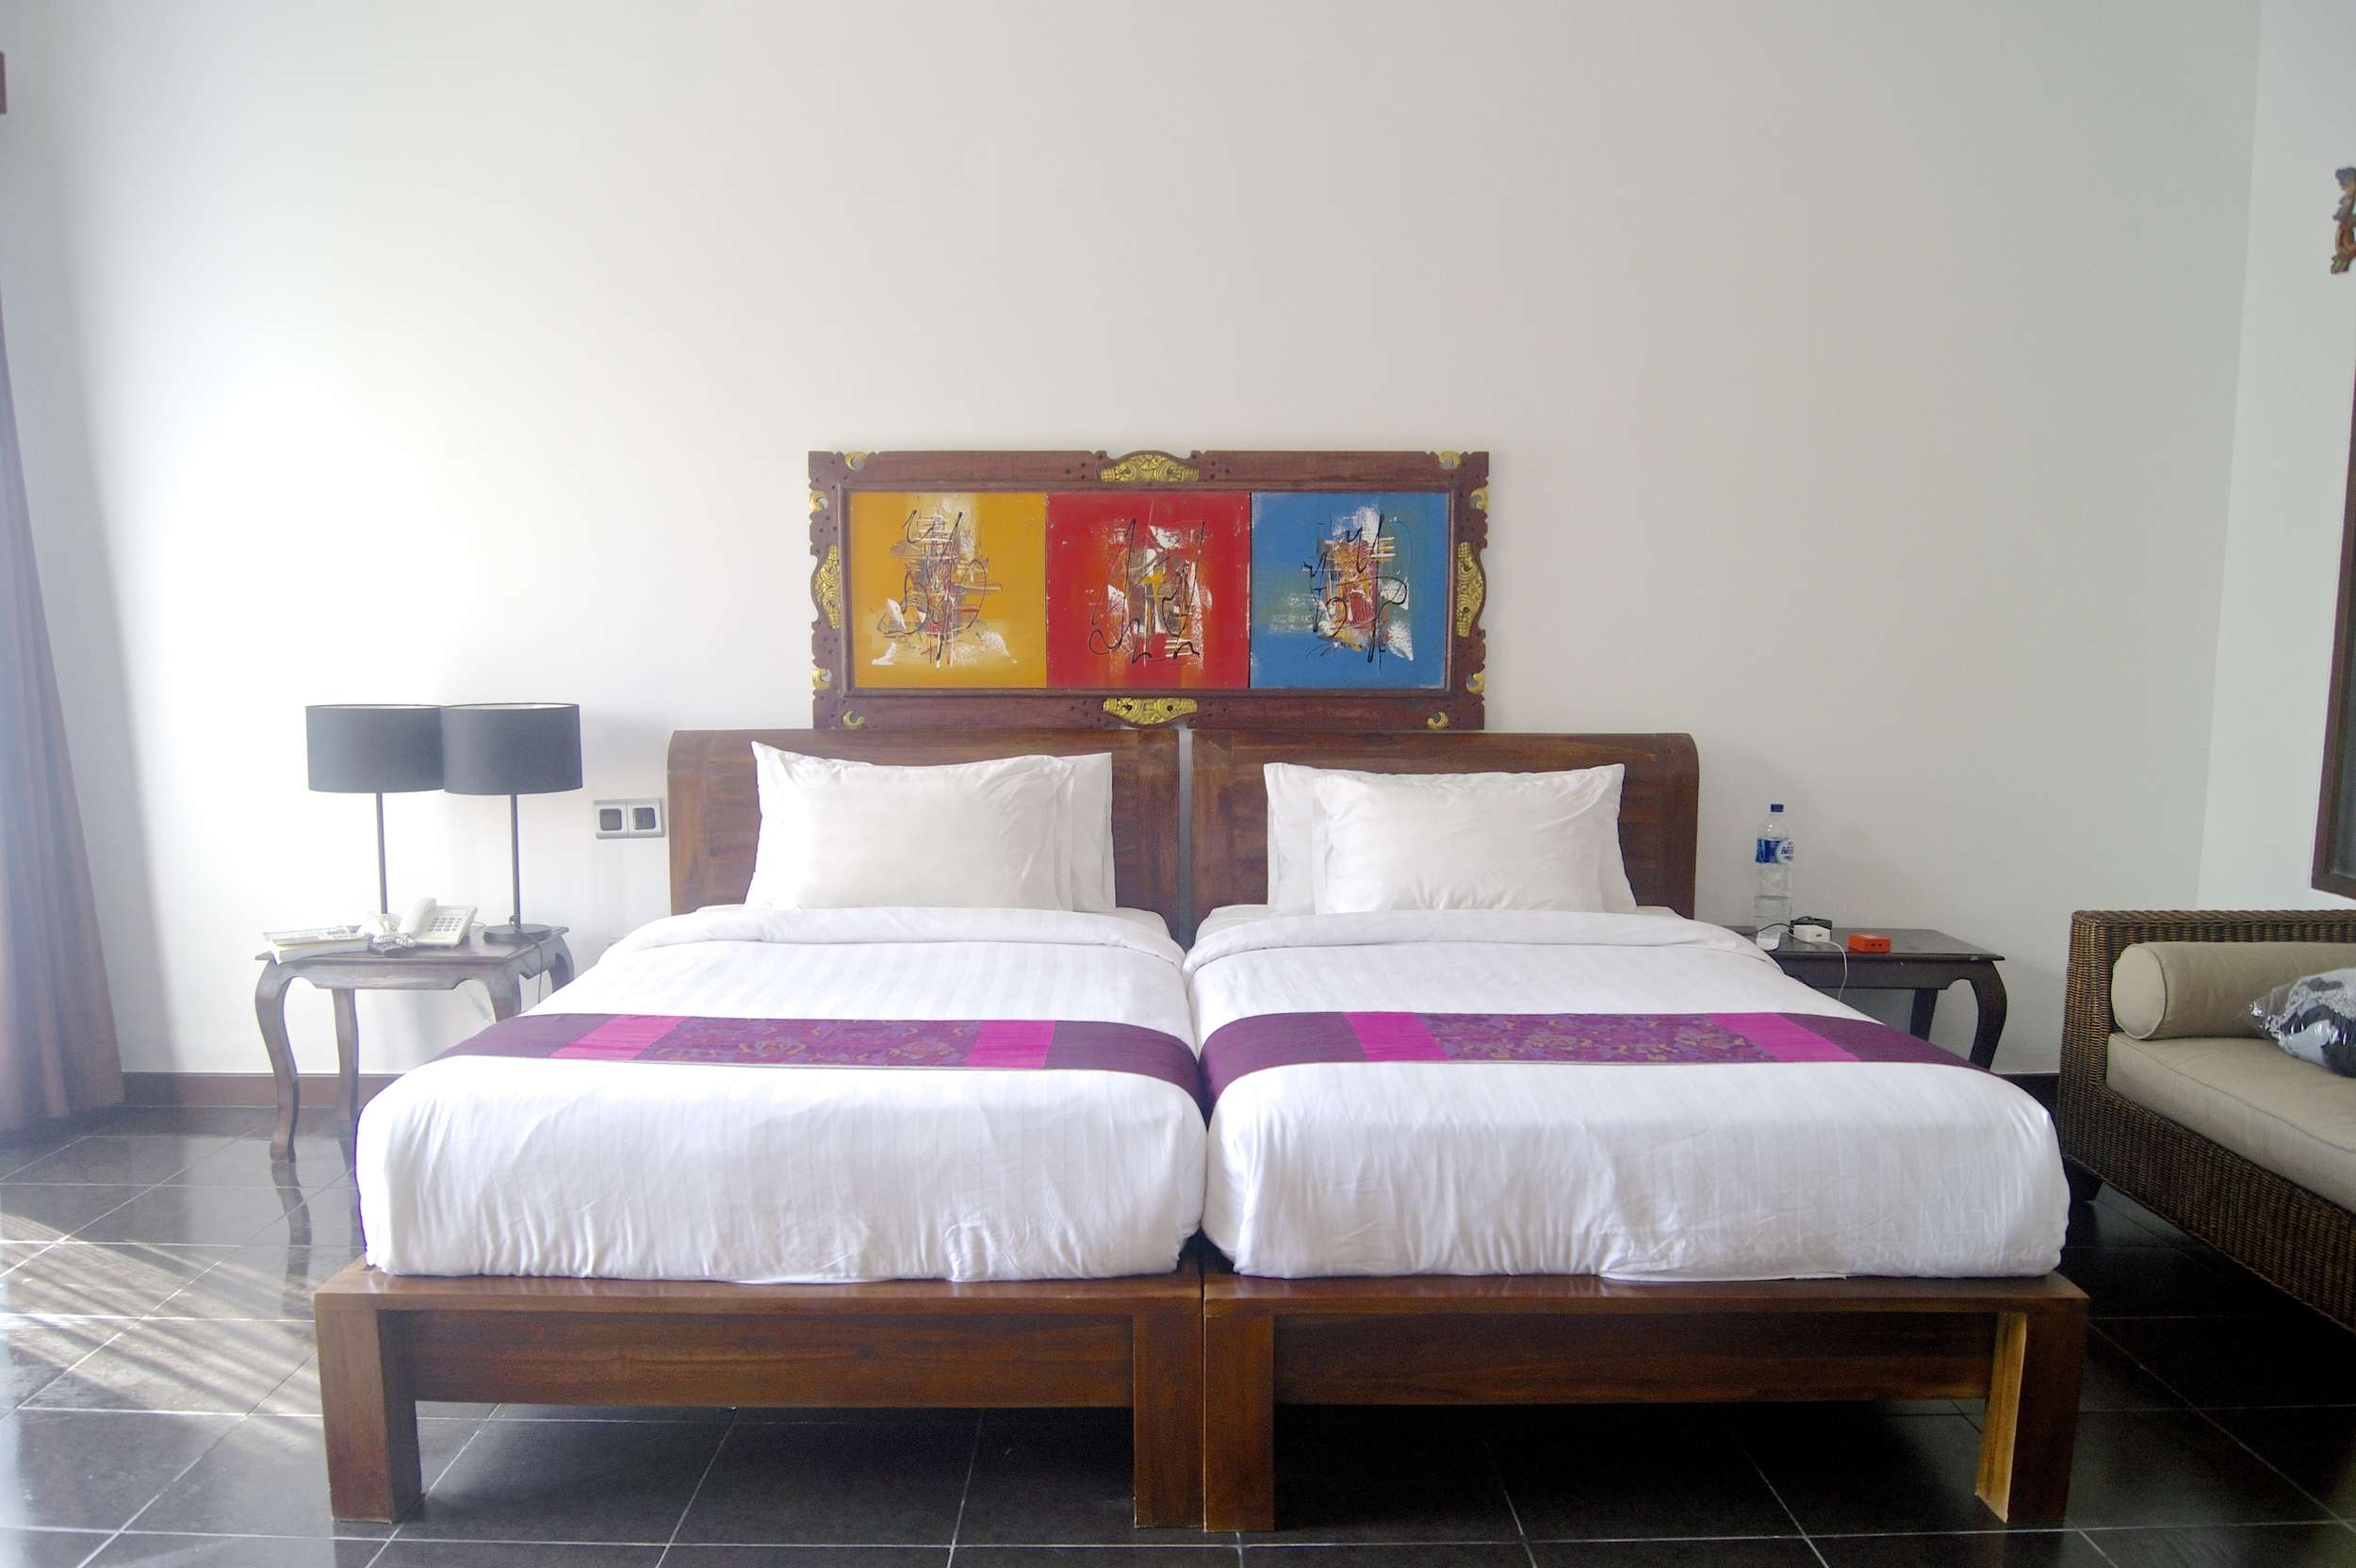 Ubud Raya Hotel - Zen Rooms - Ubud, Bali - Review - illumelation.com